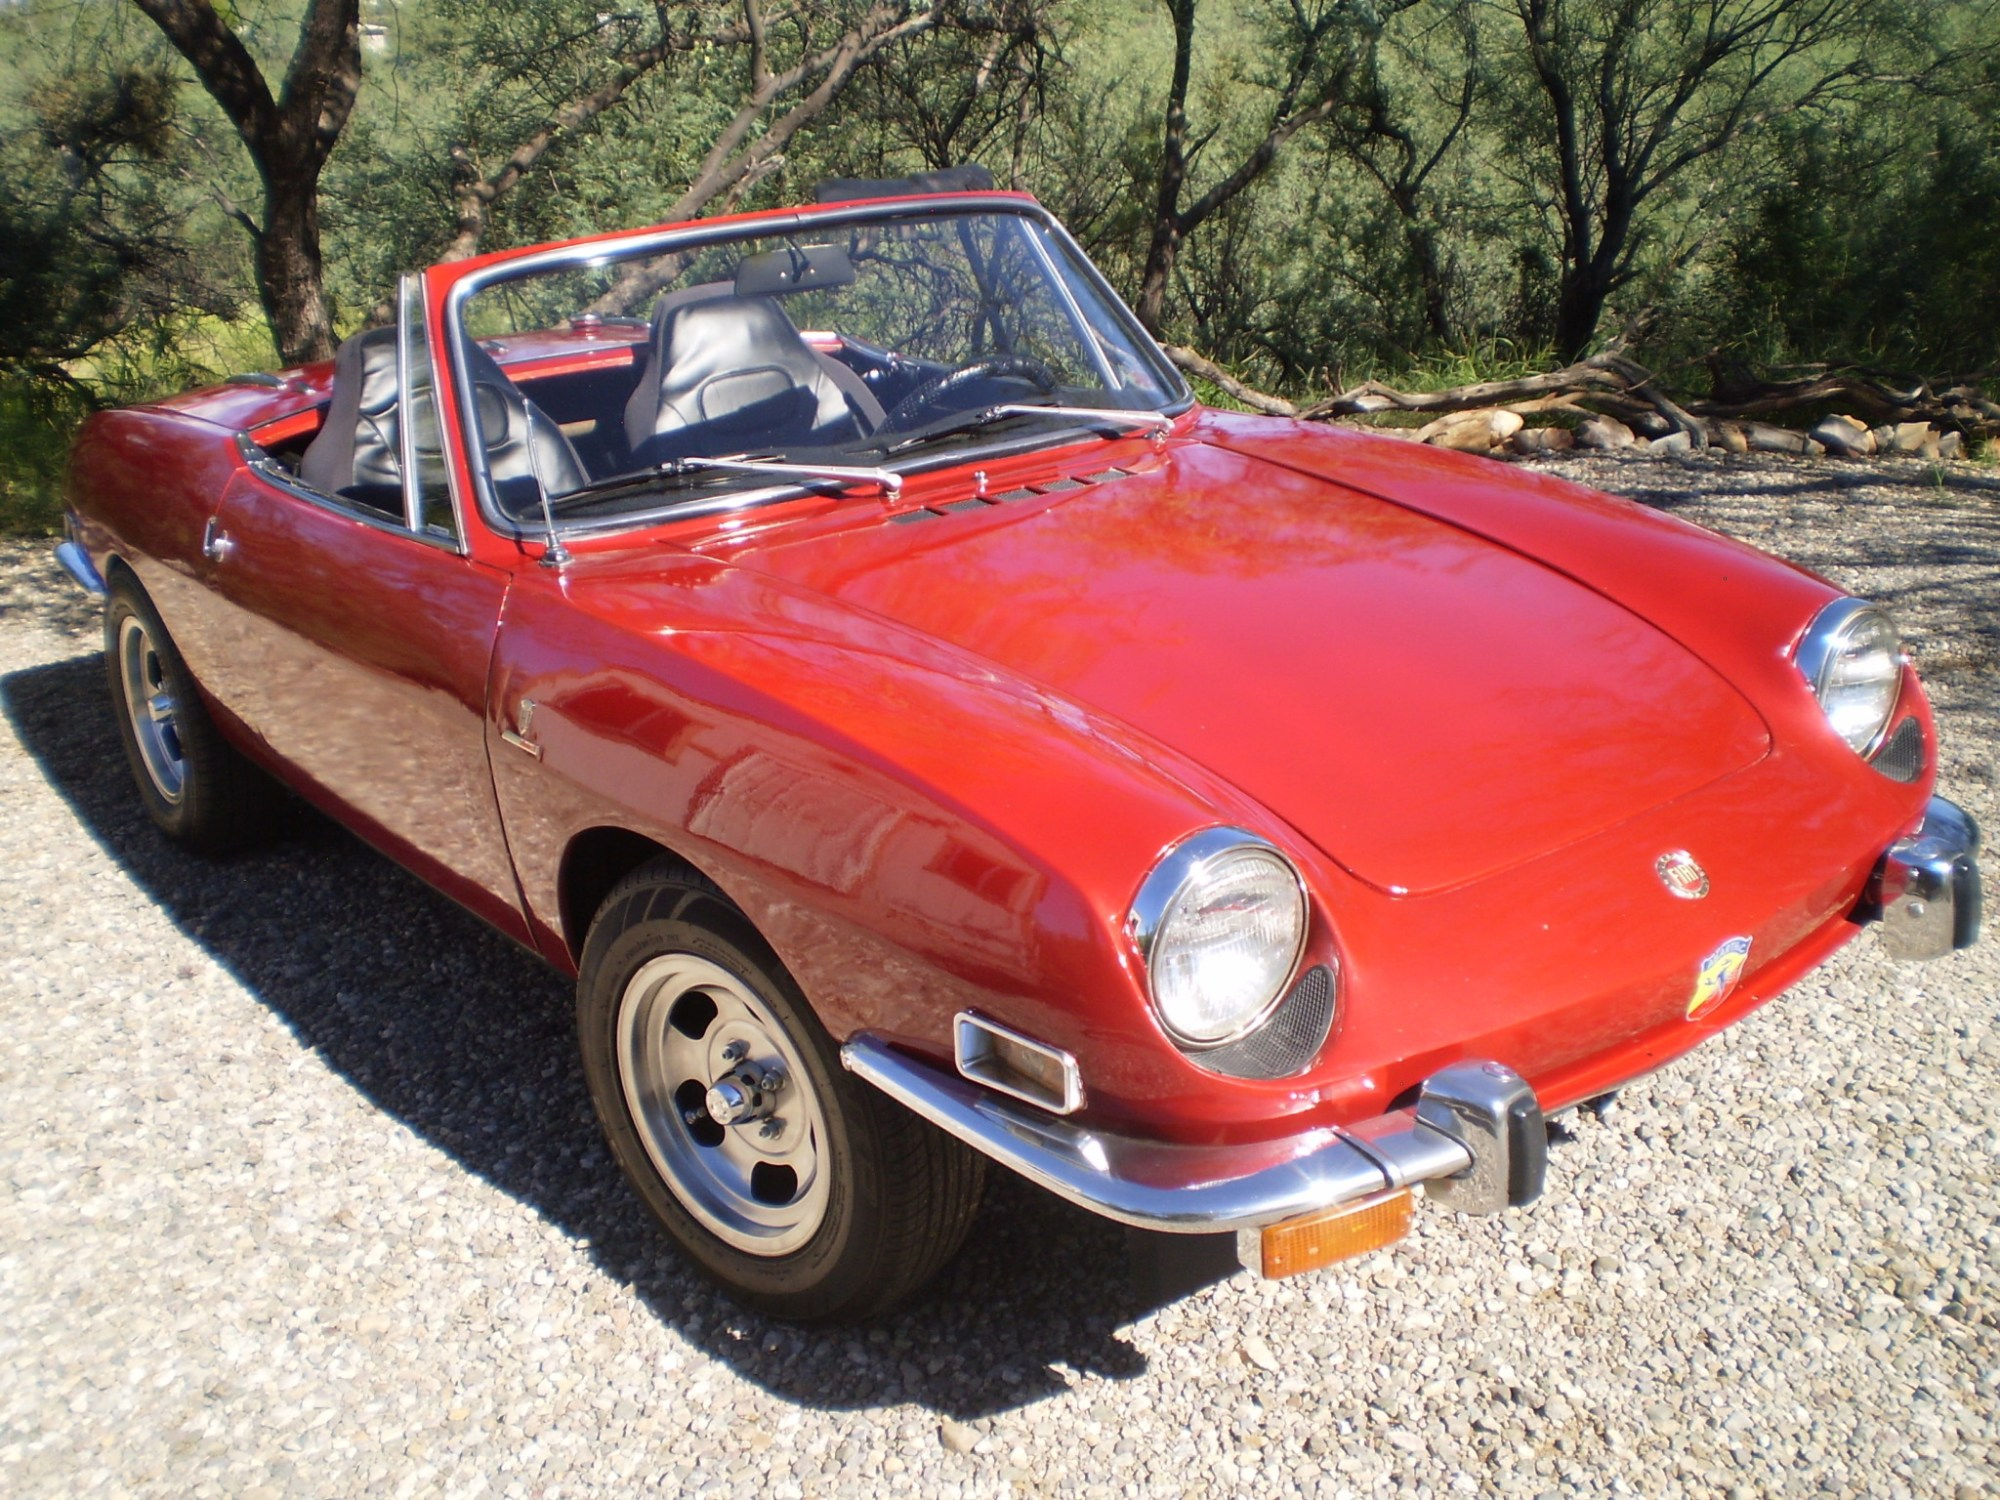 hight resolution of 1971 fiat 850 sport spider for sale on bat auctions sold for 9 400 on october 12 2018 lot 13 153 bring a trailer